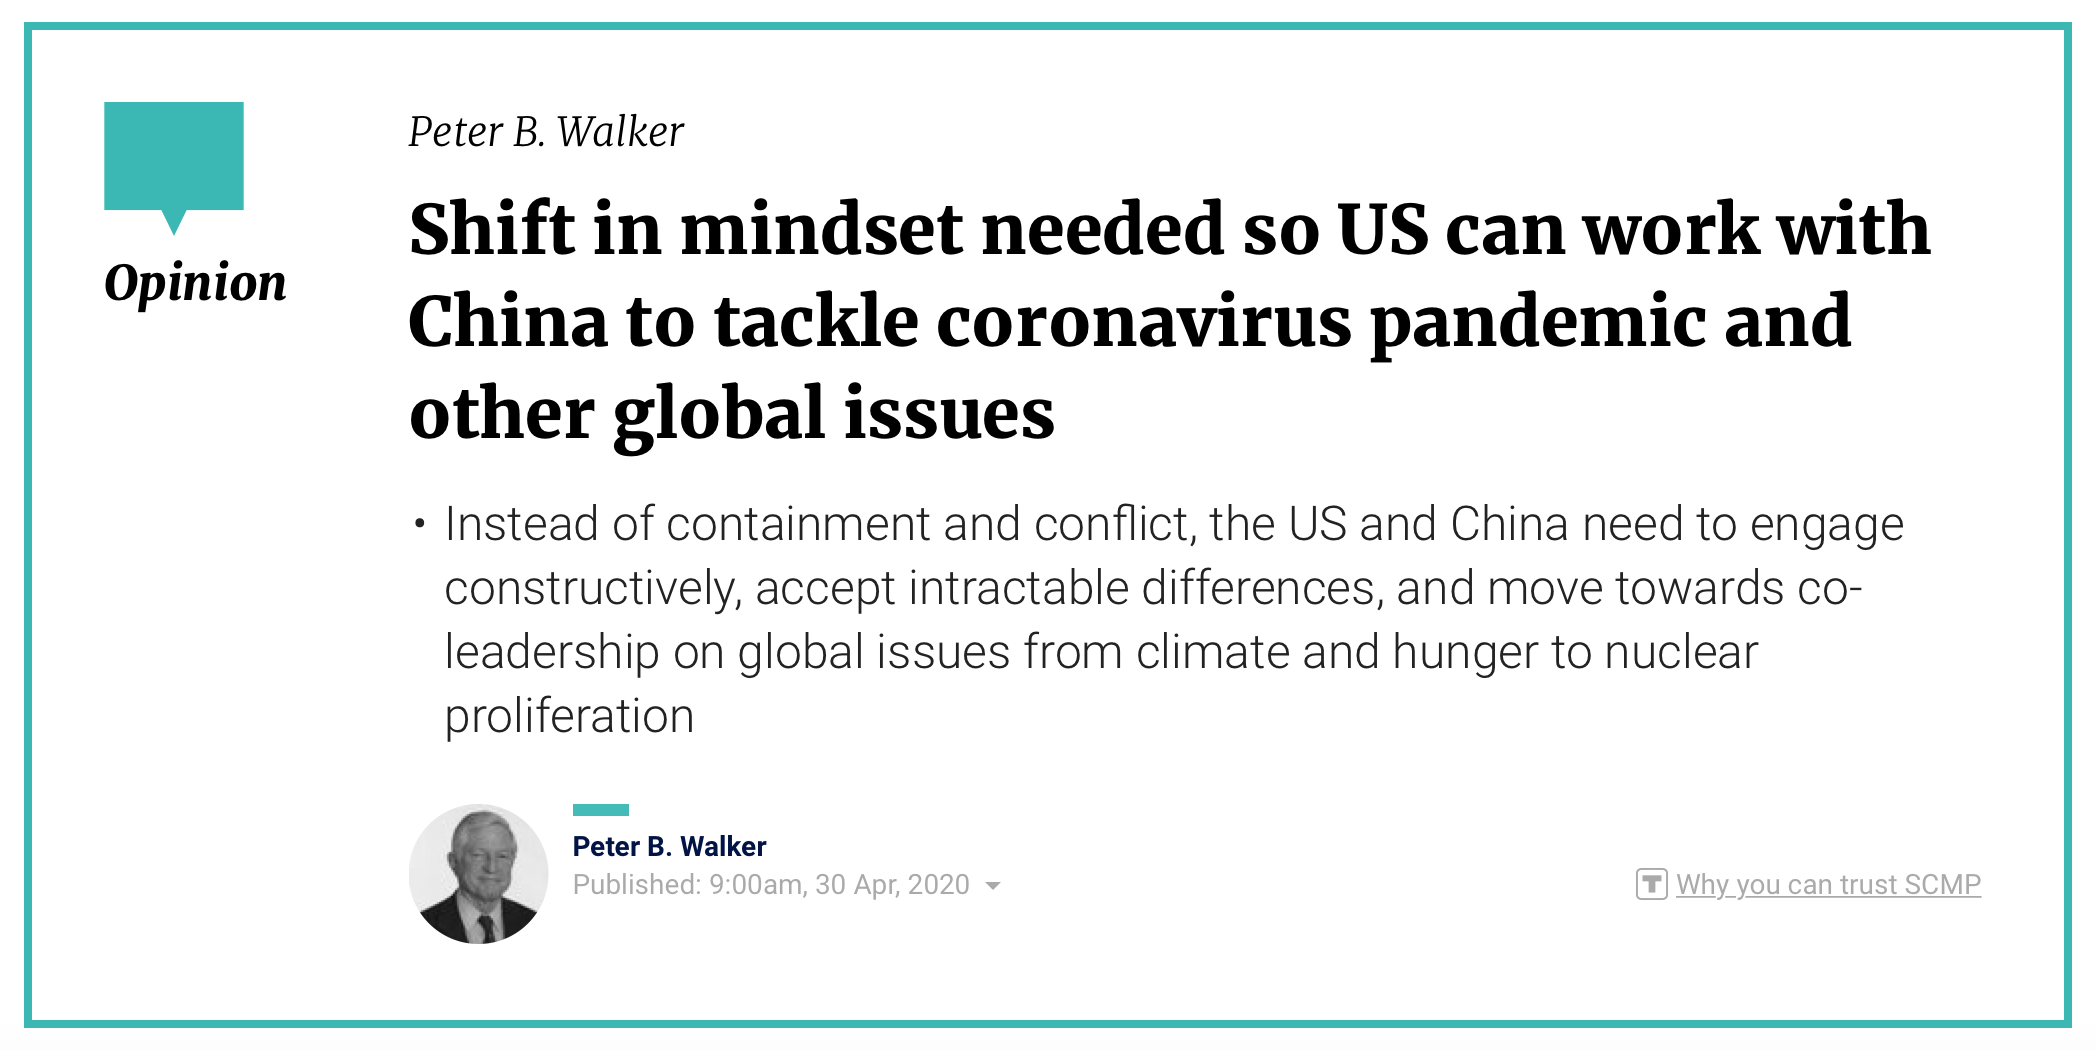 Peter Walker SCMP OpEd: Shift in Mindset Needed to Tackle Pandemic